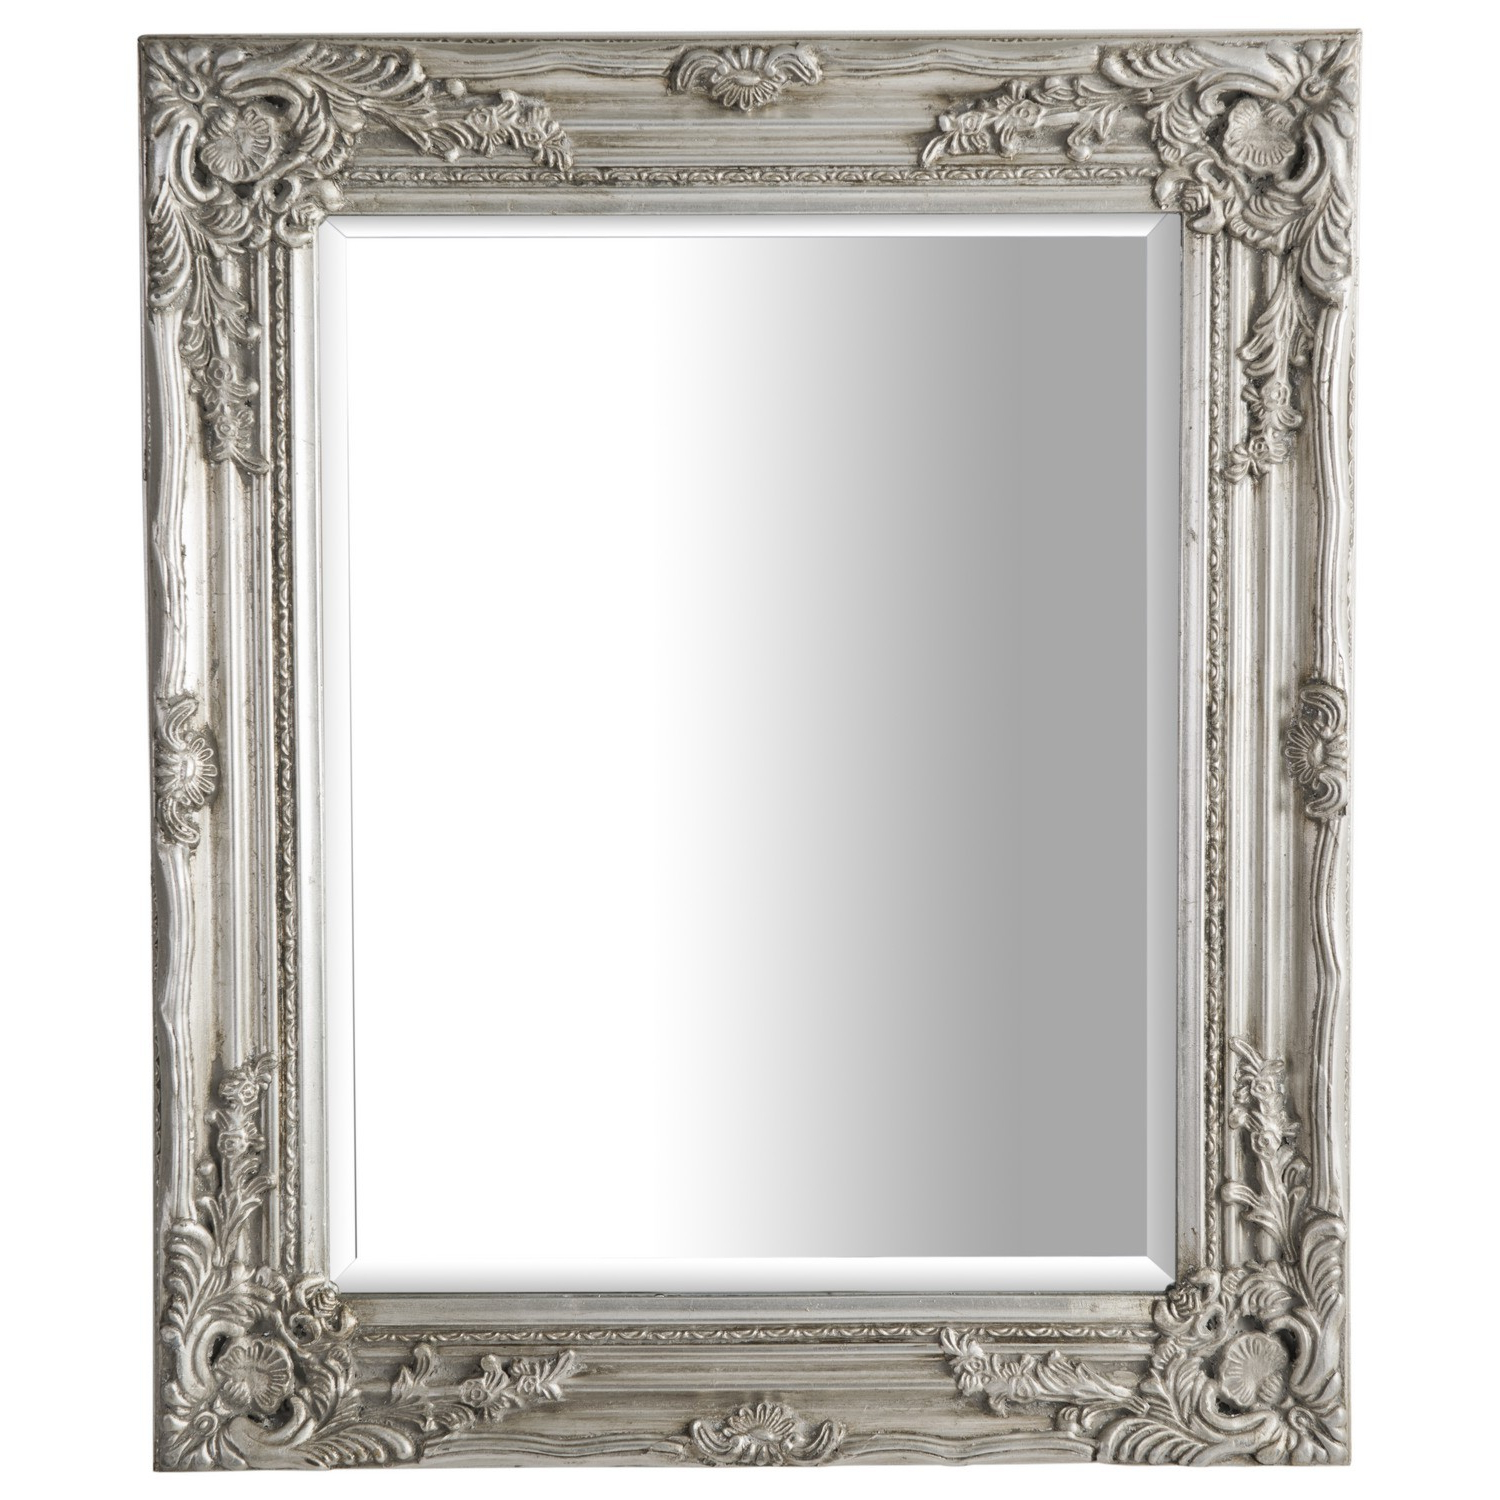 Best And Newest Antique Silver Wall Mirrors Throughout Silver Antique Ornate Mirror (View 3 of 20)